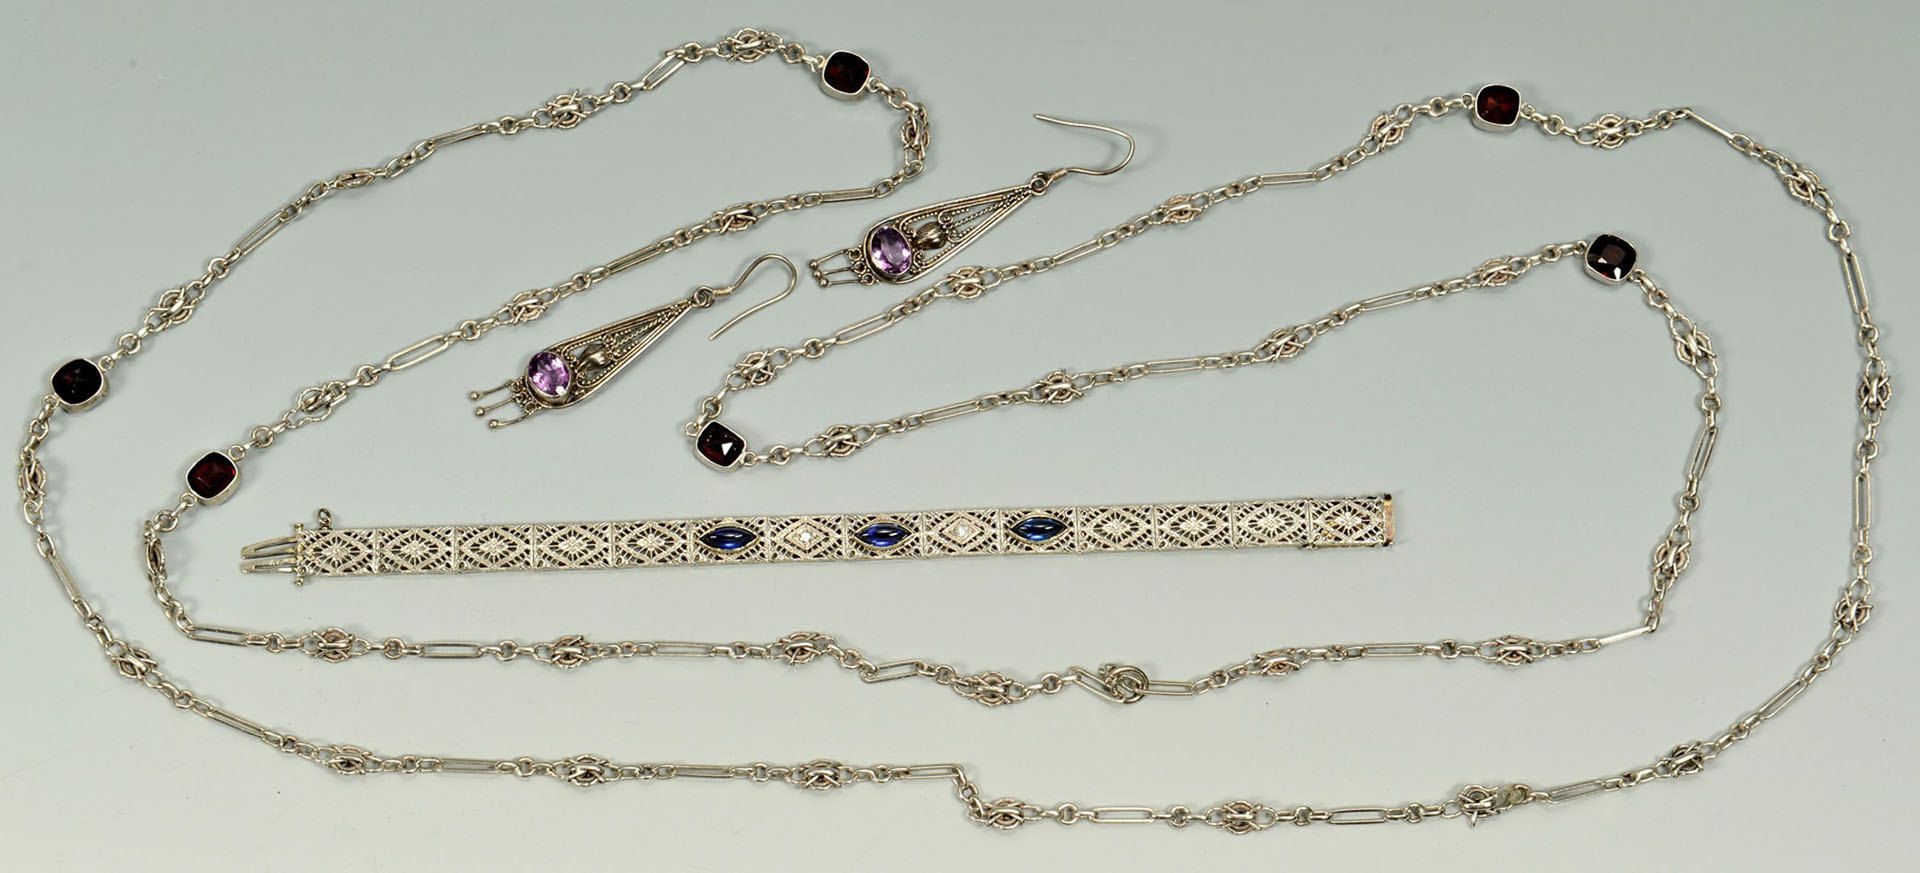 Lot 499: Group of Vintage Lady's Jewelry, 3 items